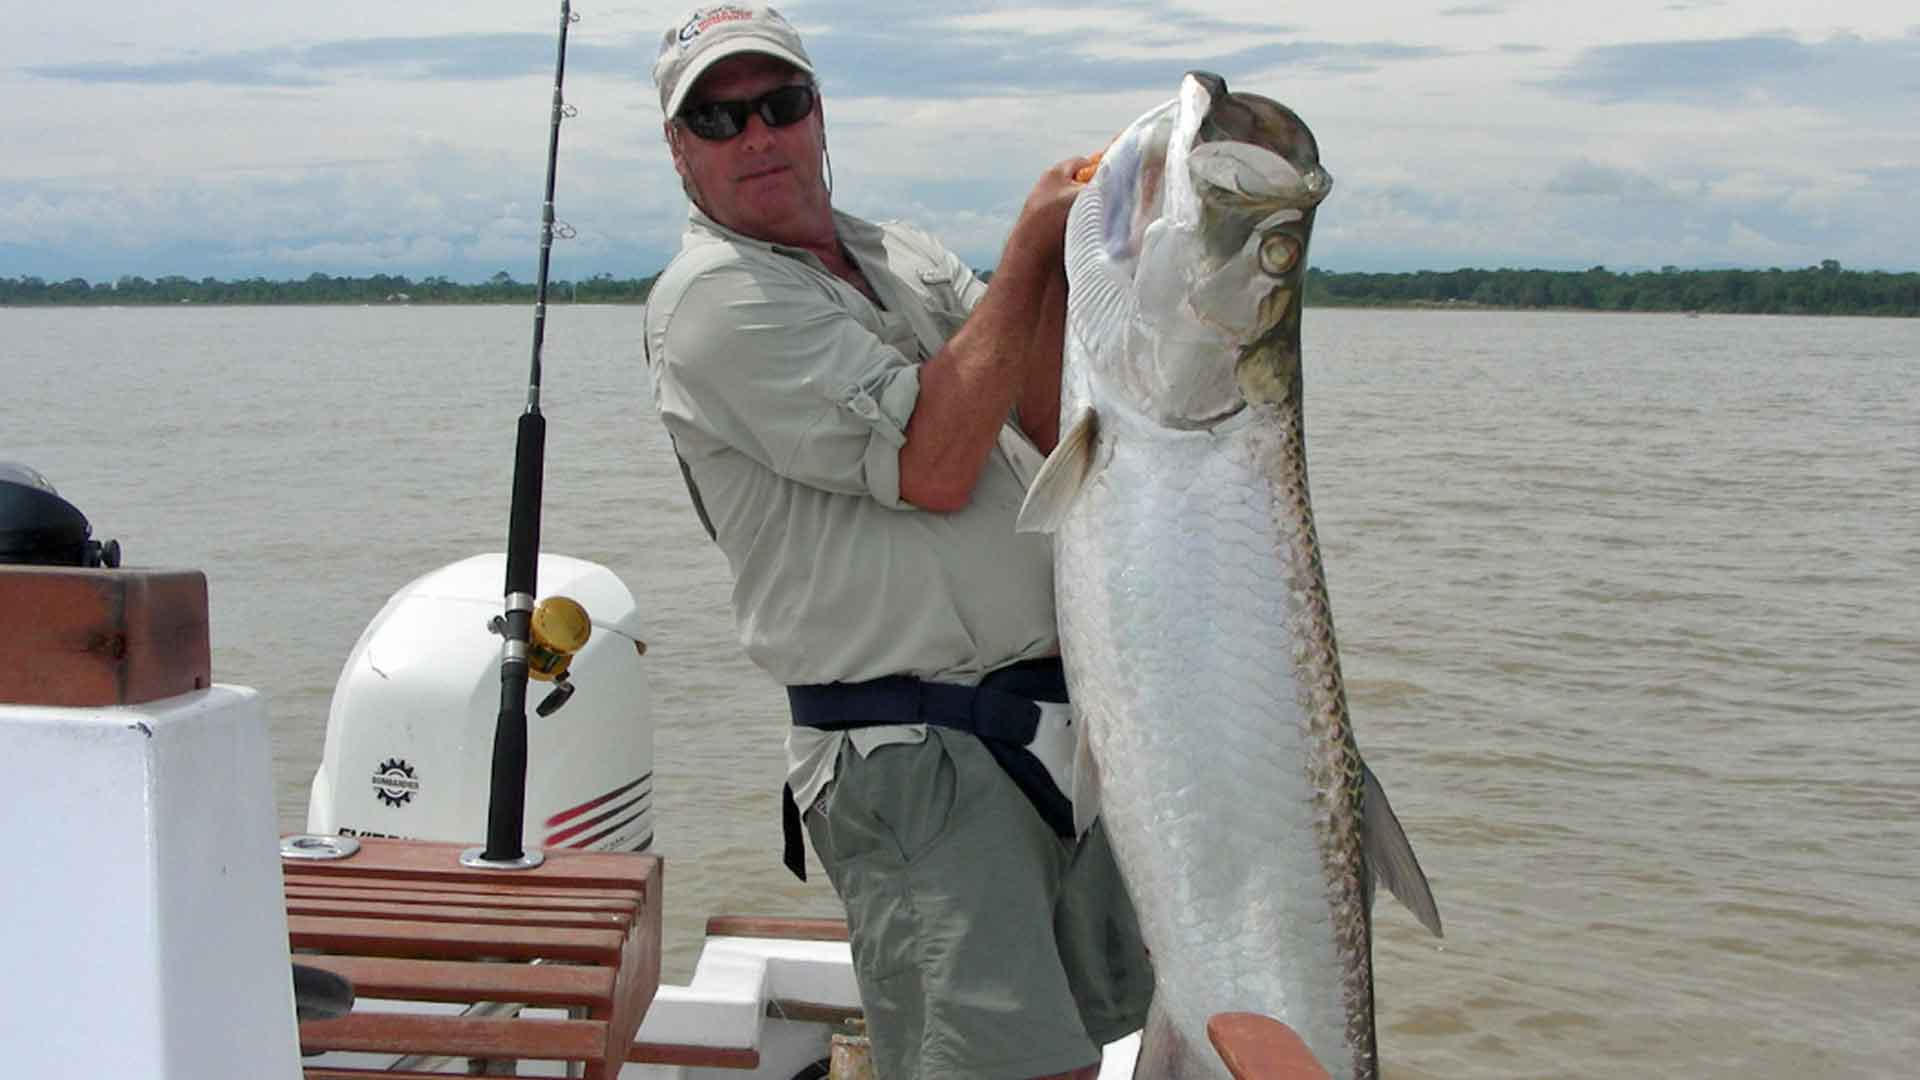 Angler with Large Tarpon